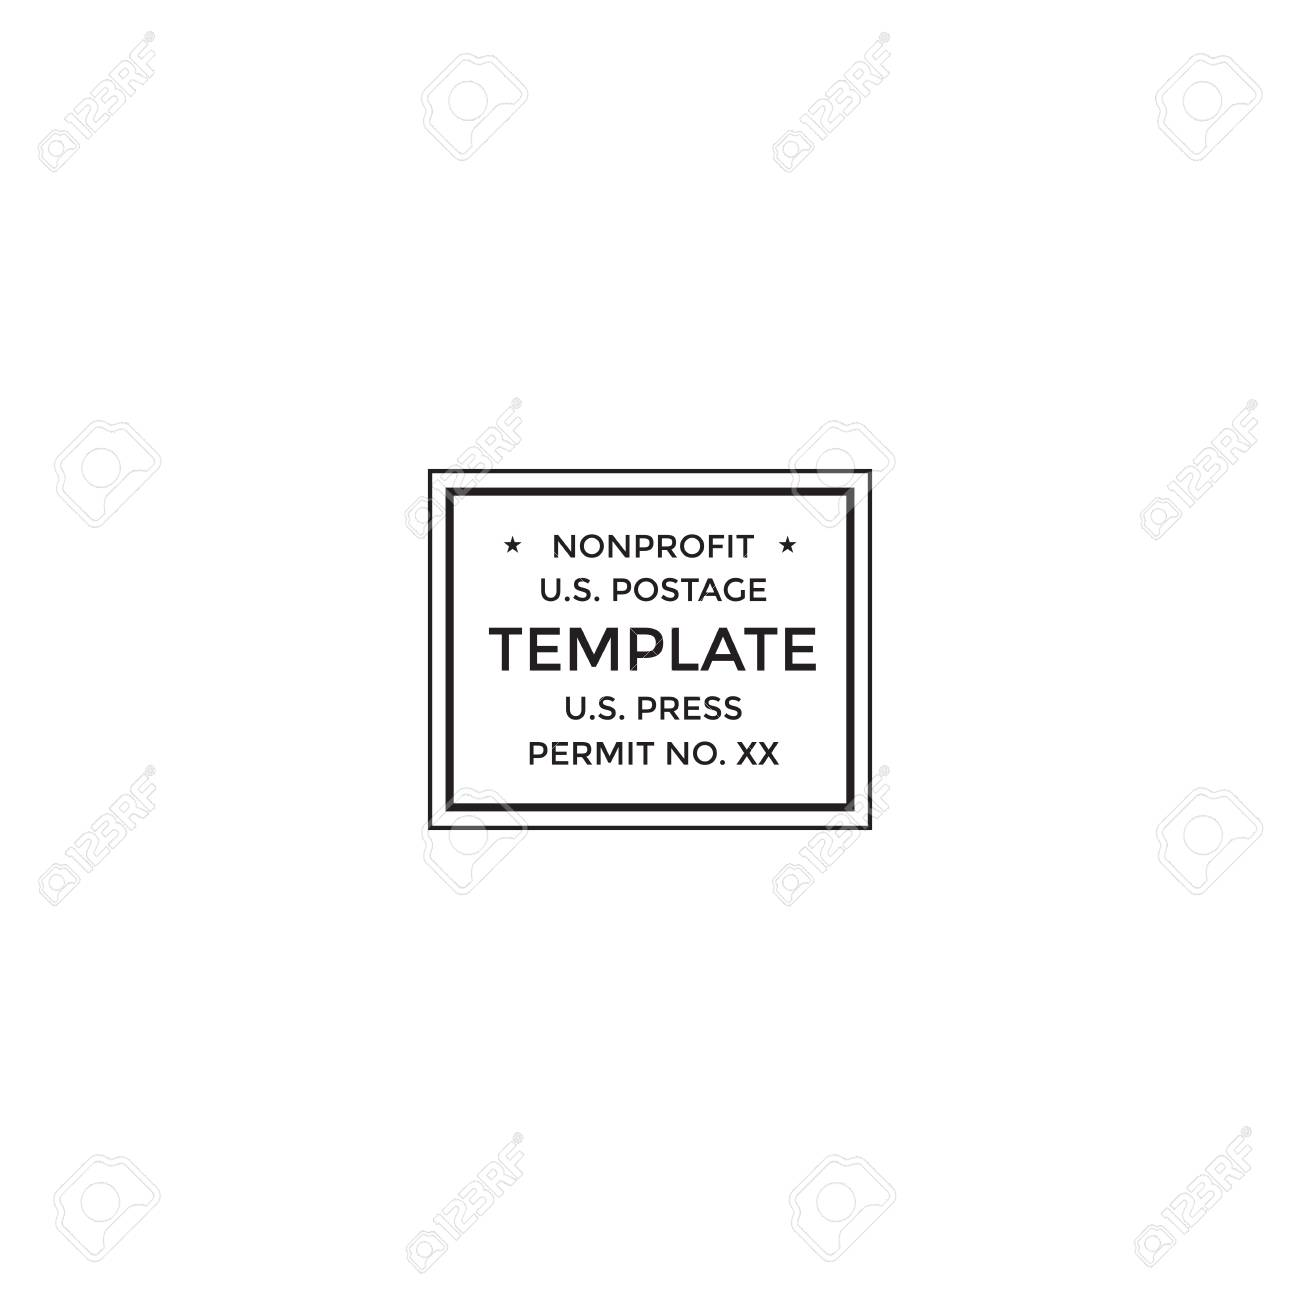 Postal cancellation First Class mail Postage Paid mark Stock Vector - 94650962